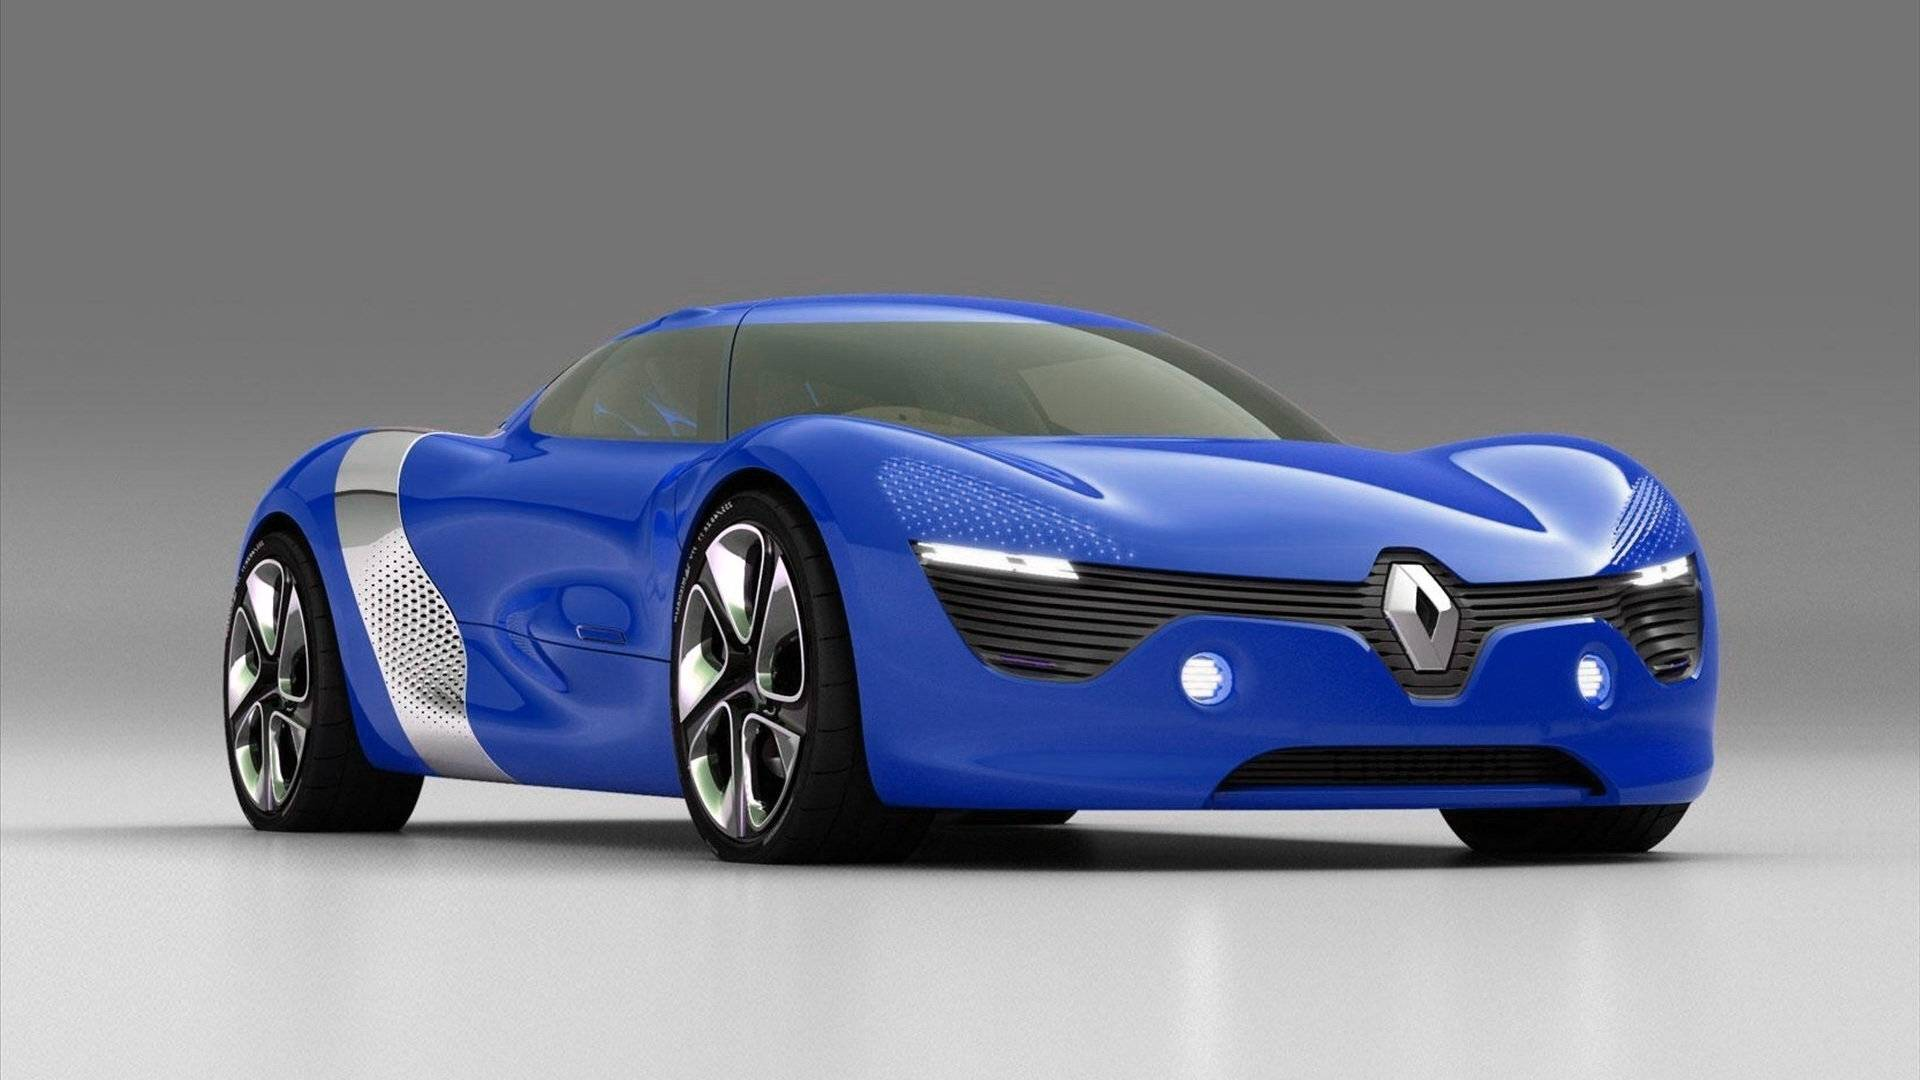 sports renault royal cars wallpapers background cool fast auto pc backgrounds desktop 1080 wallpapercave